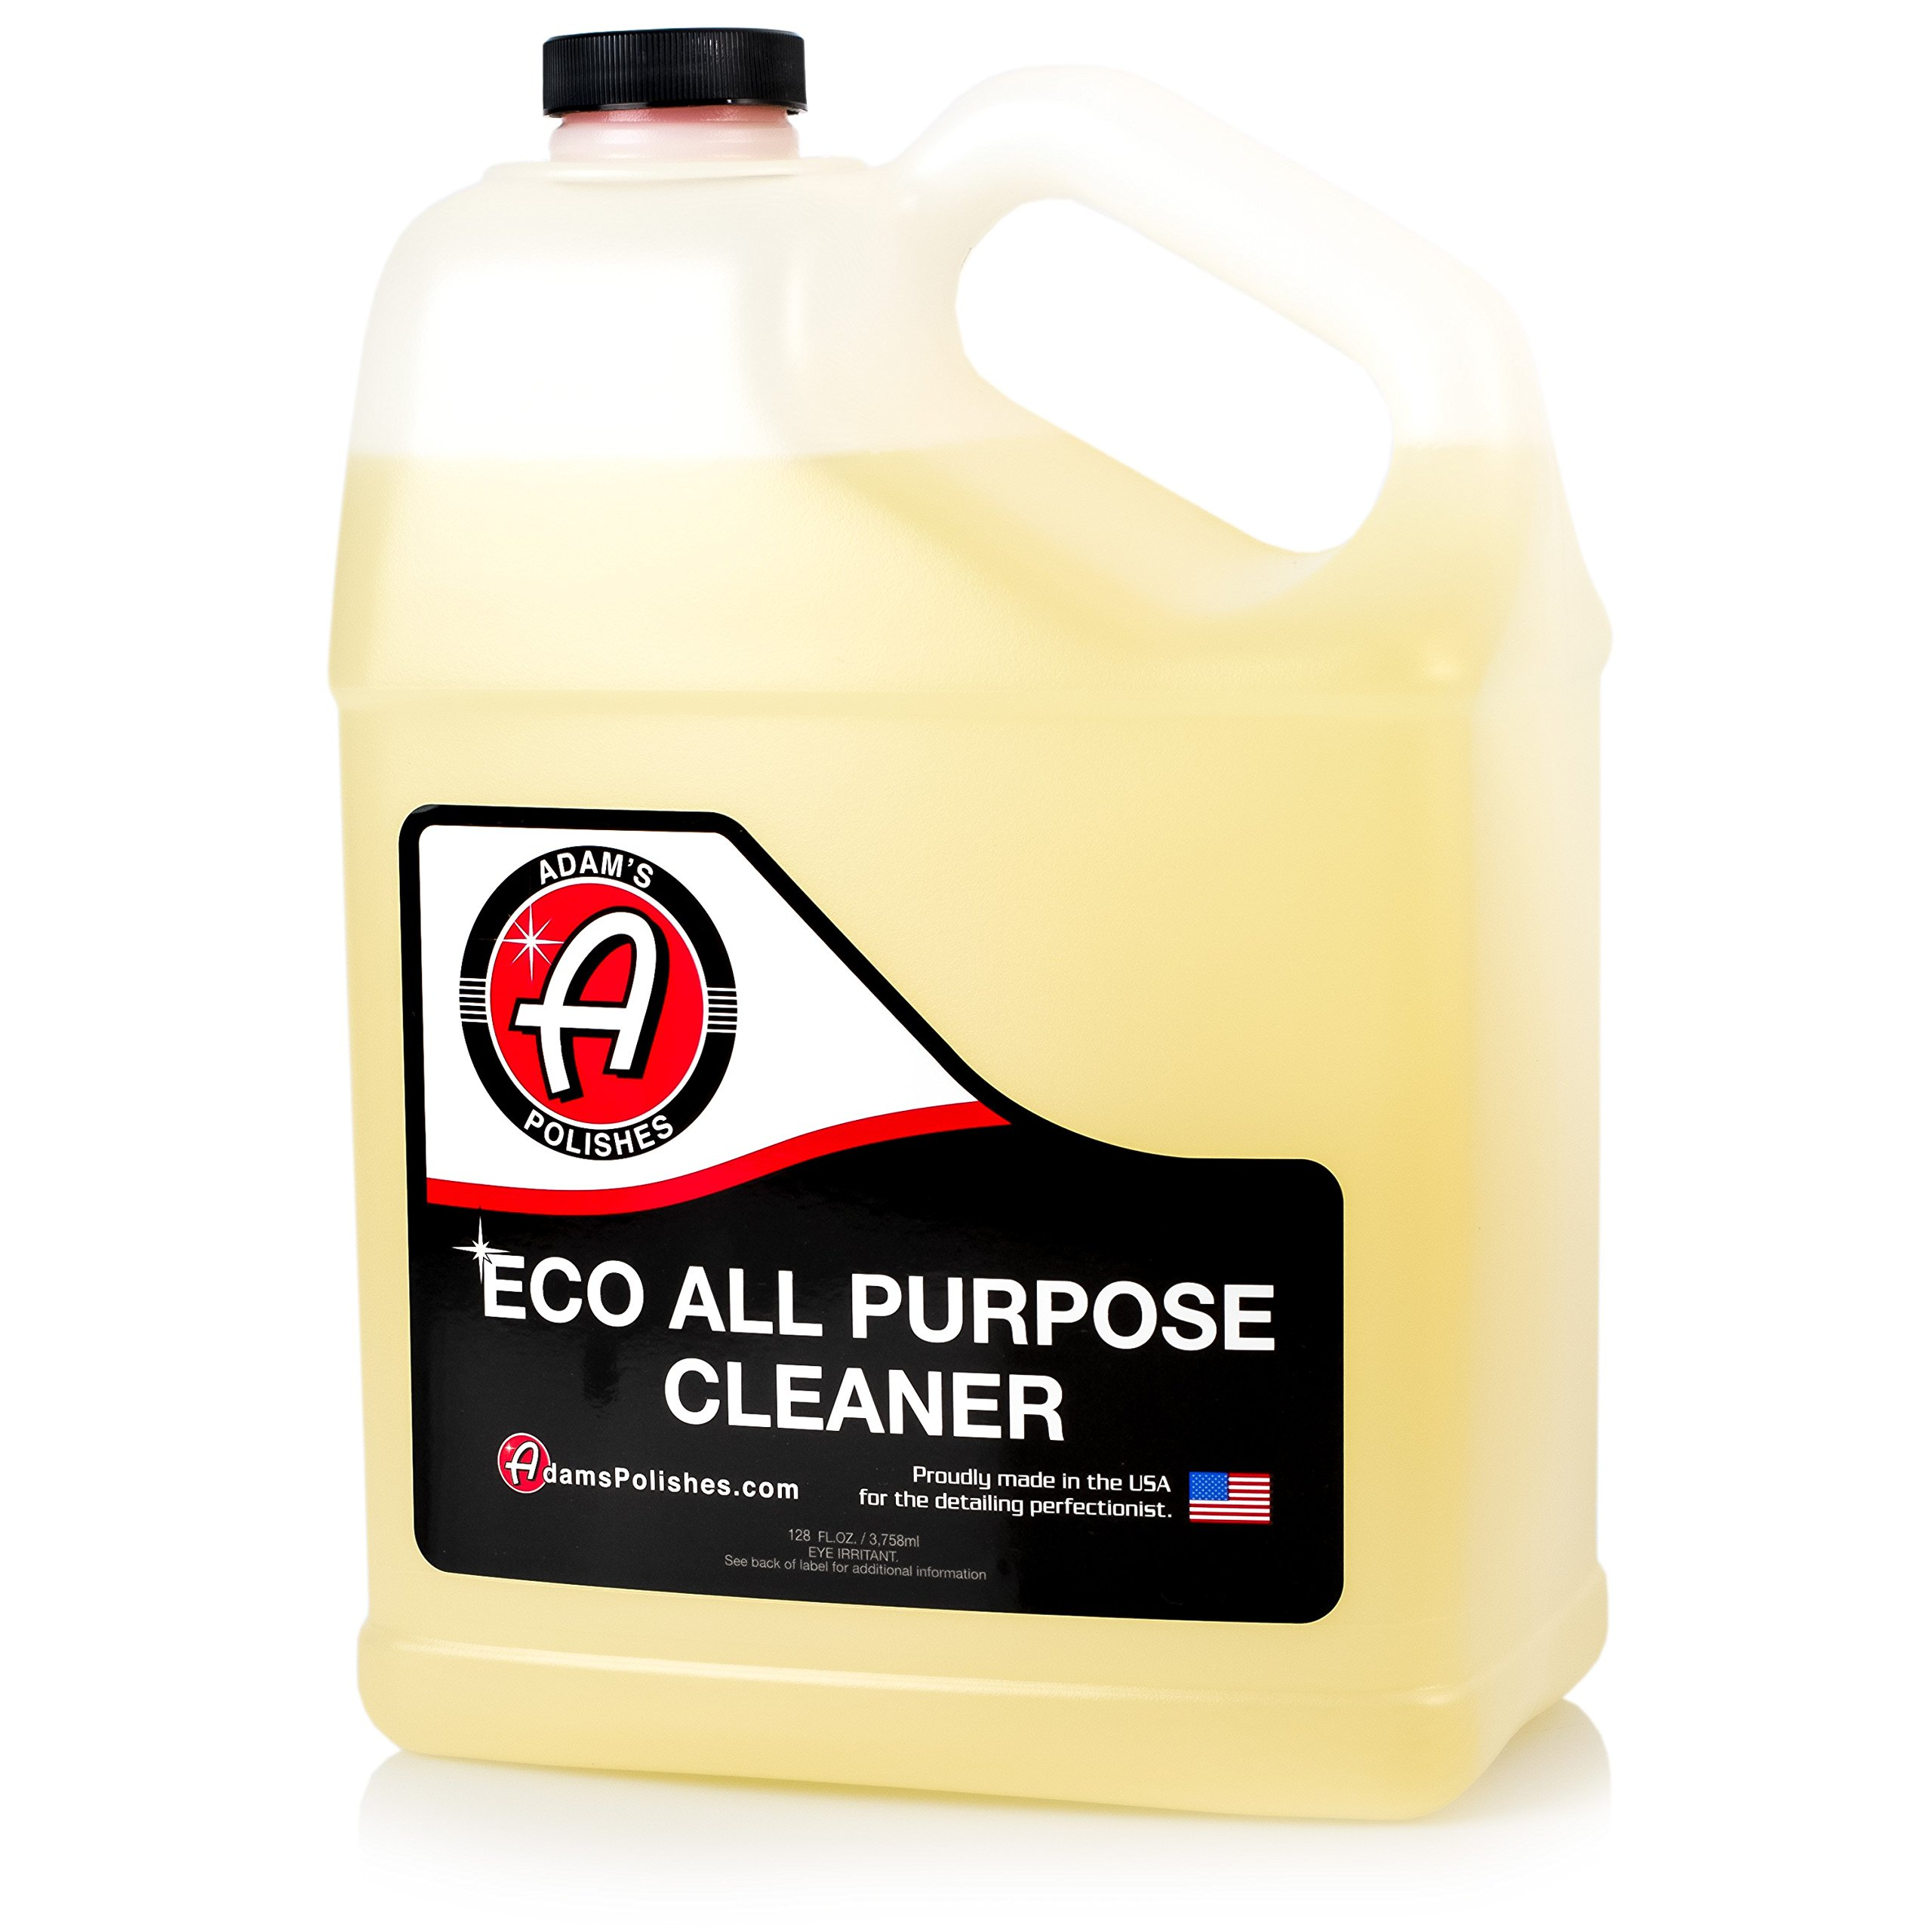 Adam's ECO All Purpose Cleaner Gallon - Industrial Strength, Concentrated Formula Can be Diluted Down - Tough on Dirt but Easy on Your Car, You, and The Environment by Adam's Polishes